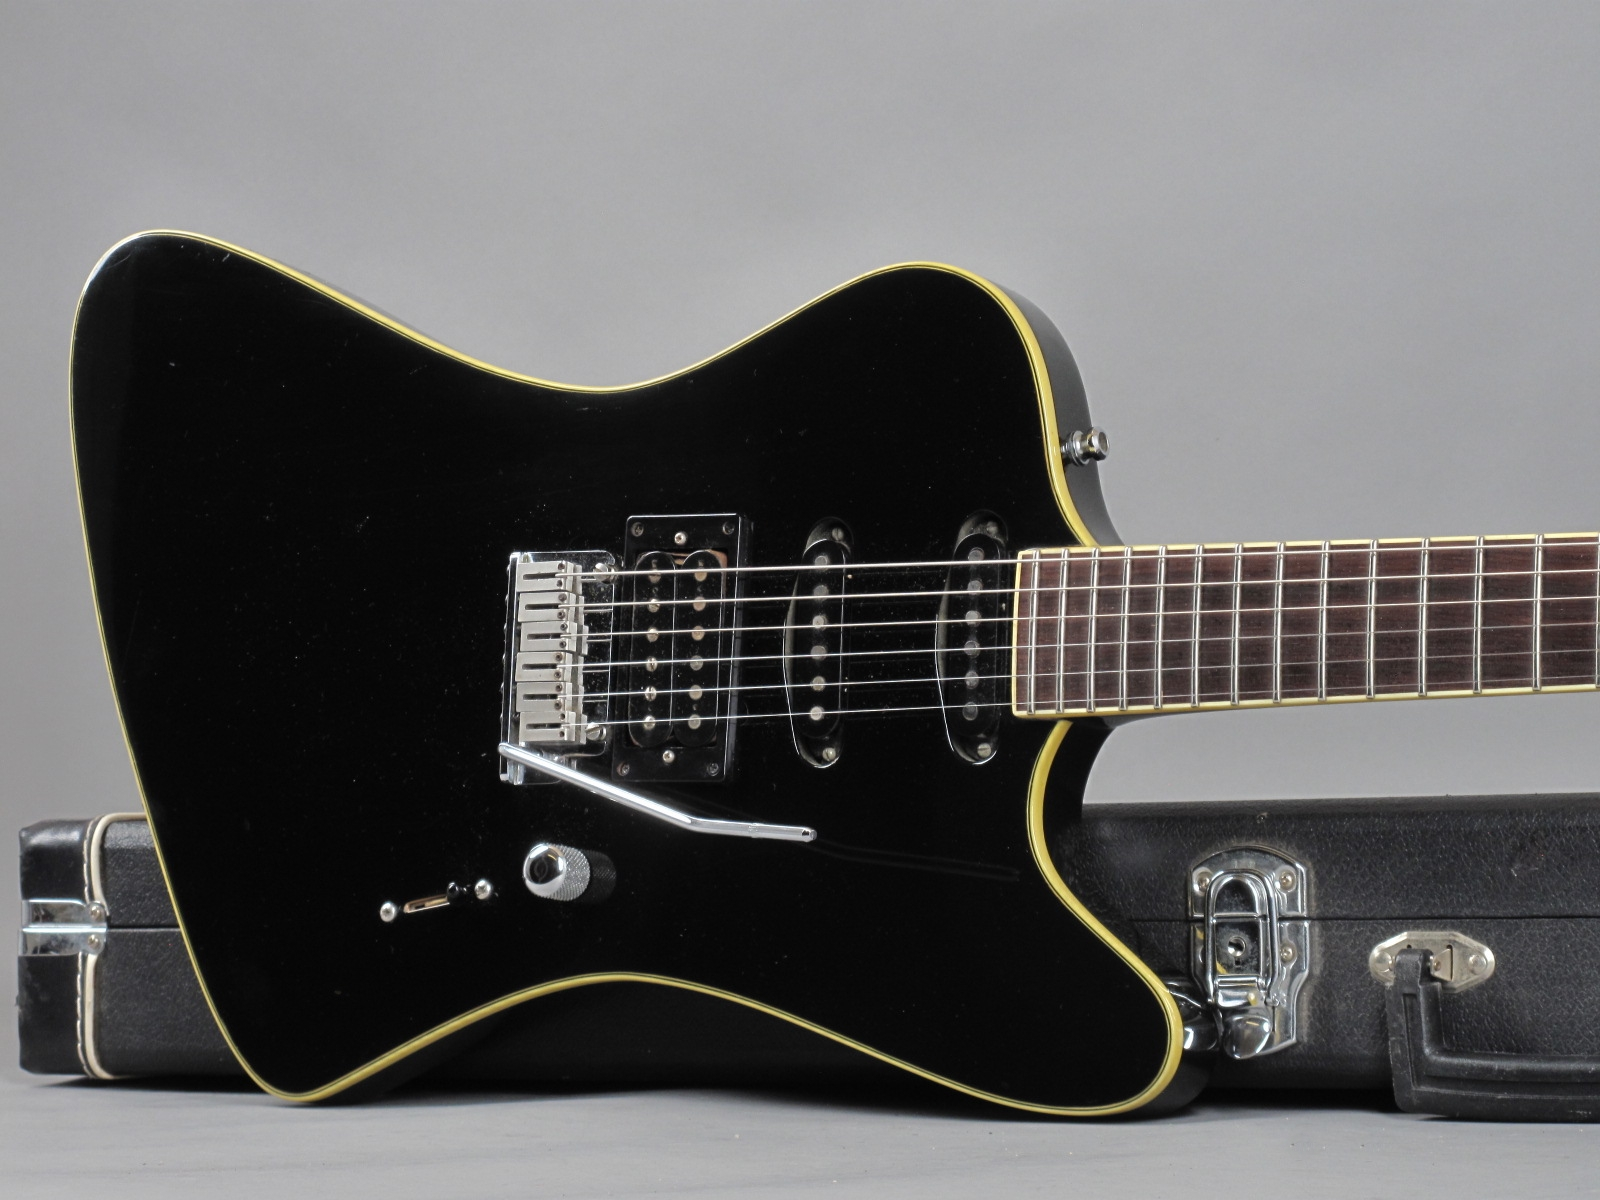 https://guitarpoint.de/app/uploads/products/1990-lentz-firebird-black/1990-Lentz-Firebird-Black_19.jpg